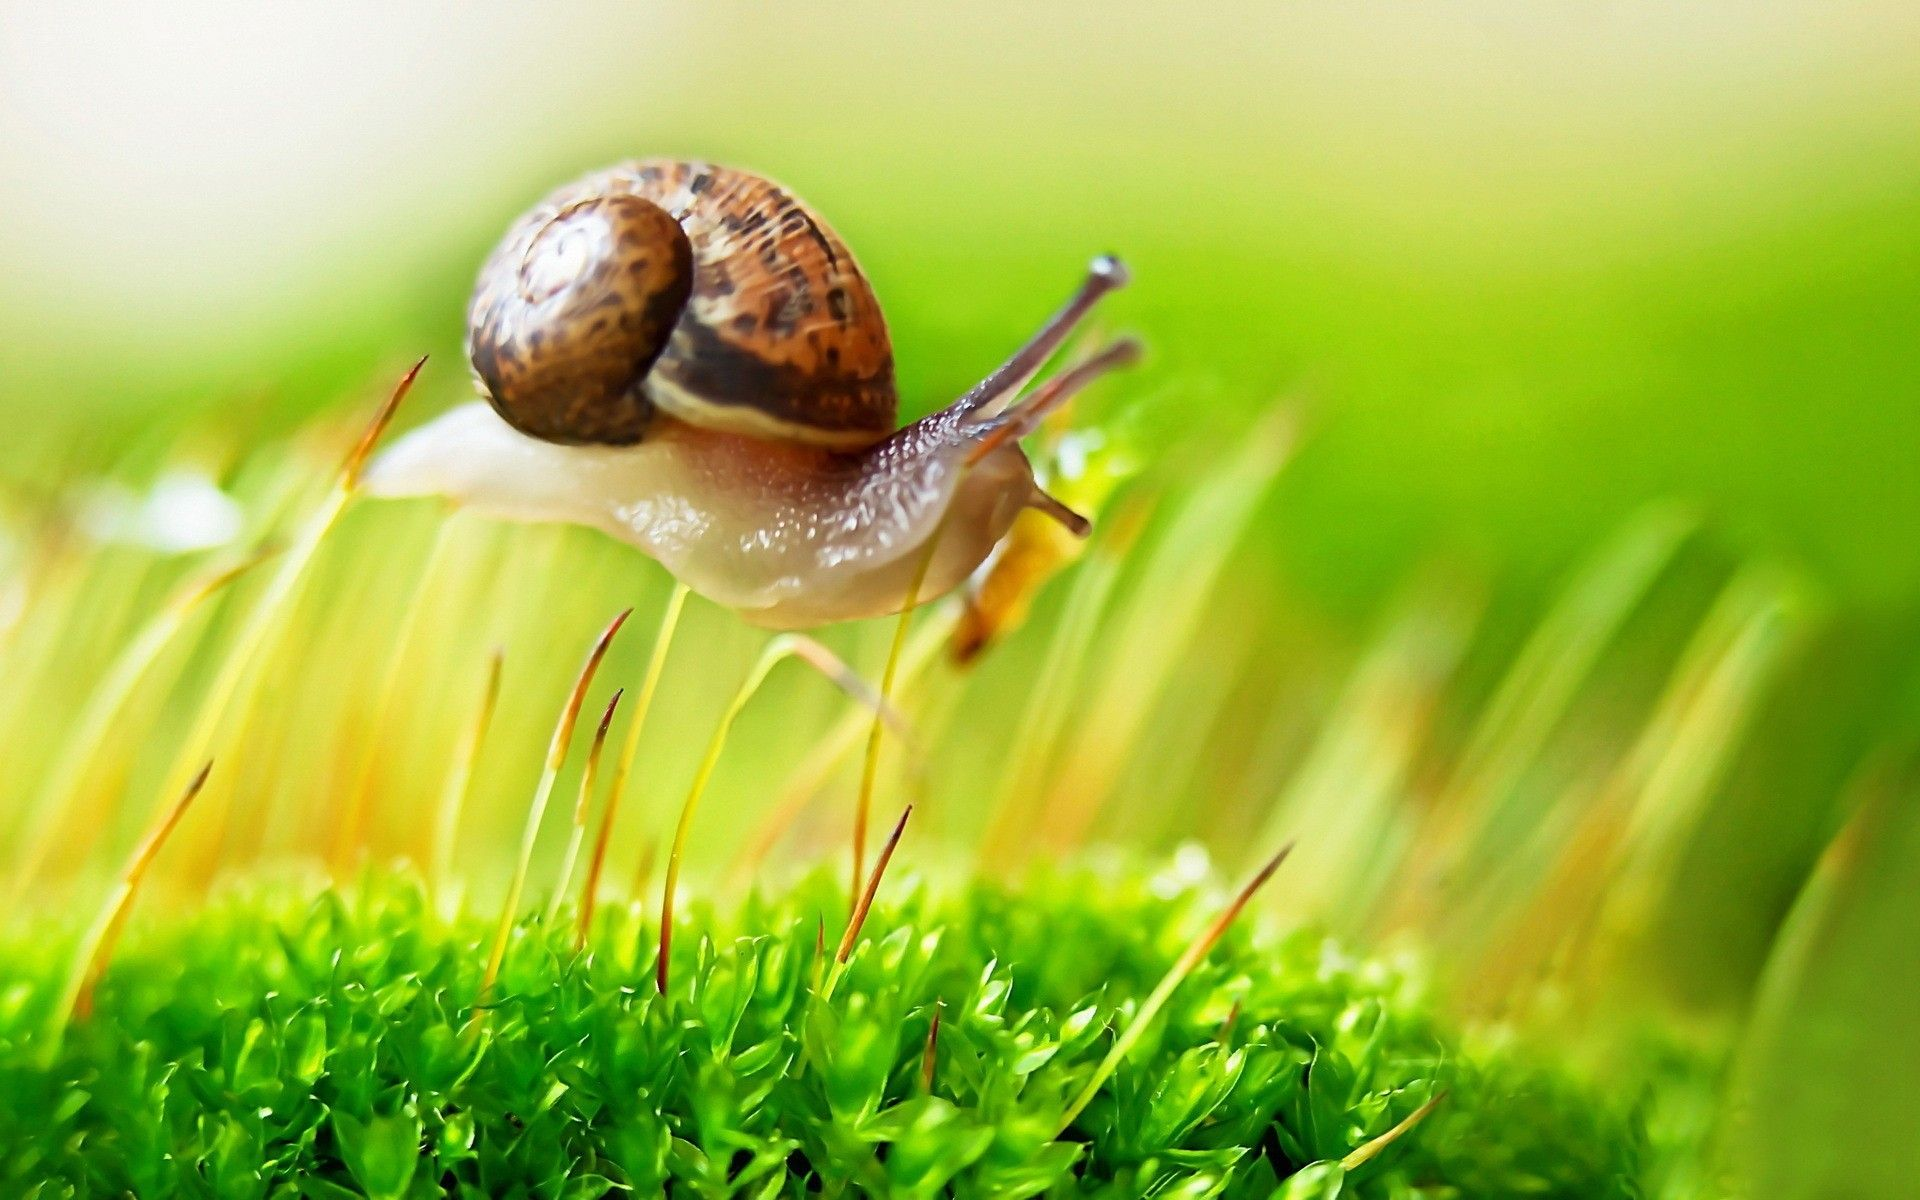 Snail on the grass wallpapers and image